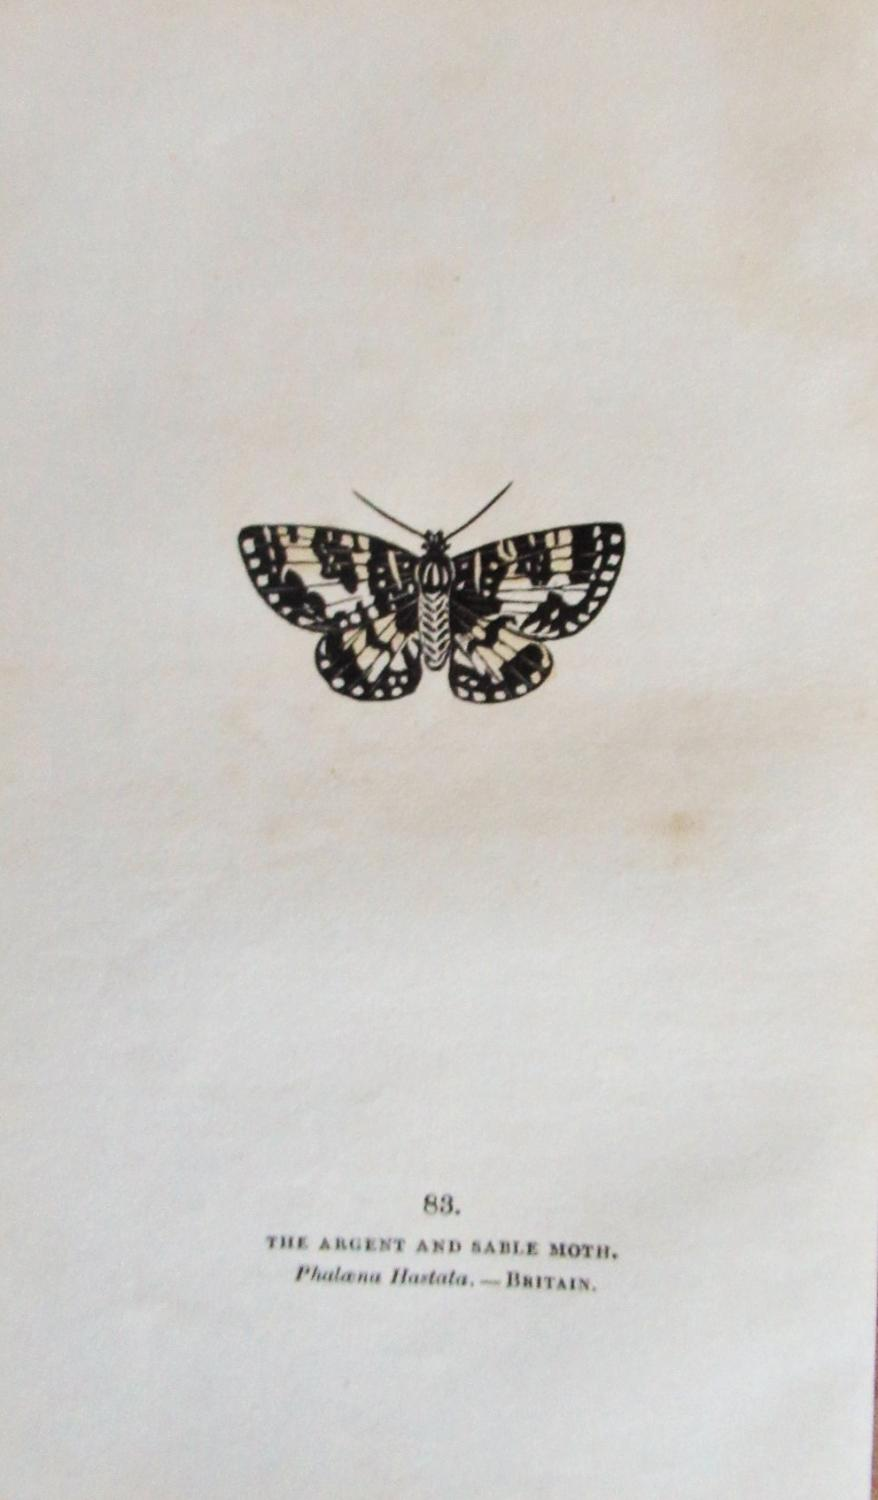 THE_ARGENT_AND_SABLE_MOTH__COPPER_PLATE_ENGRAVING_CAPTAIN_THOMAS_BROWN_Very_Good